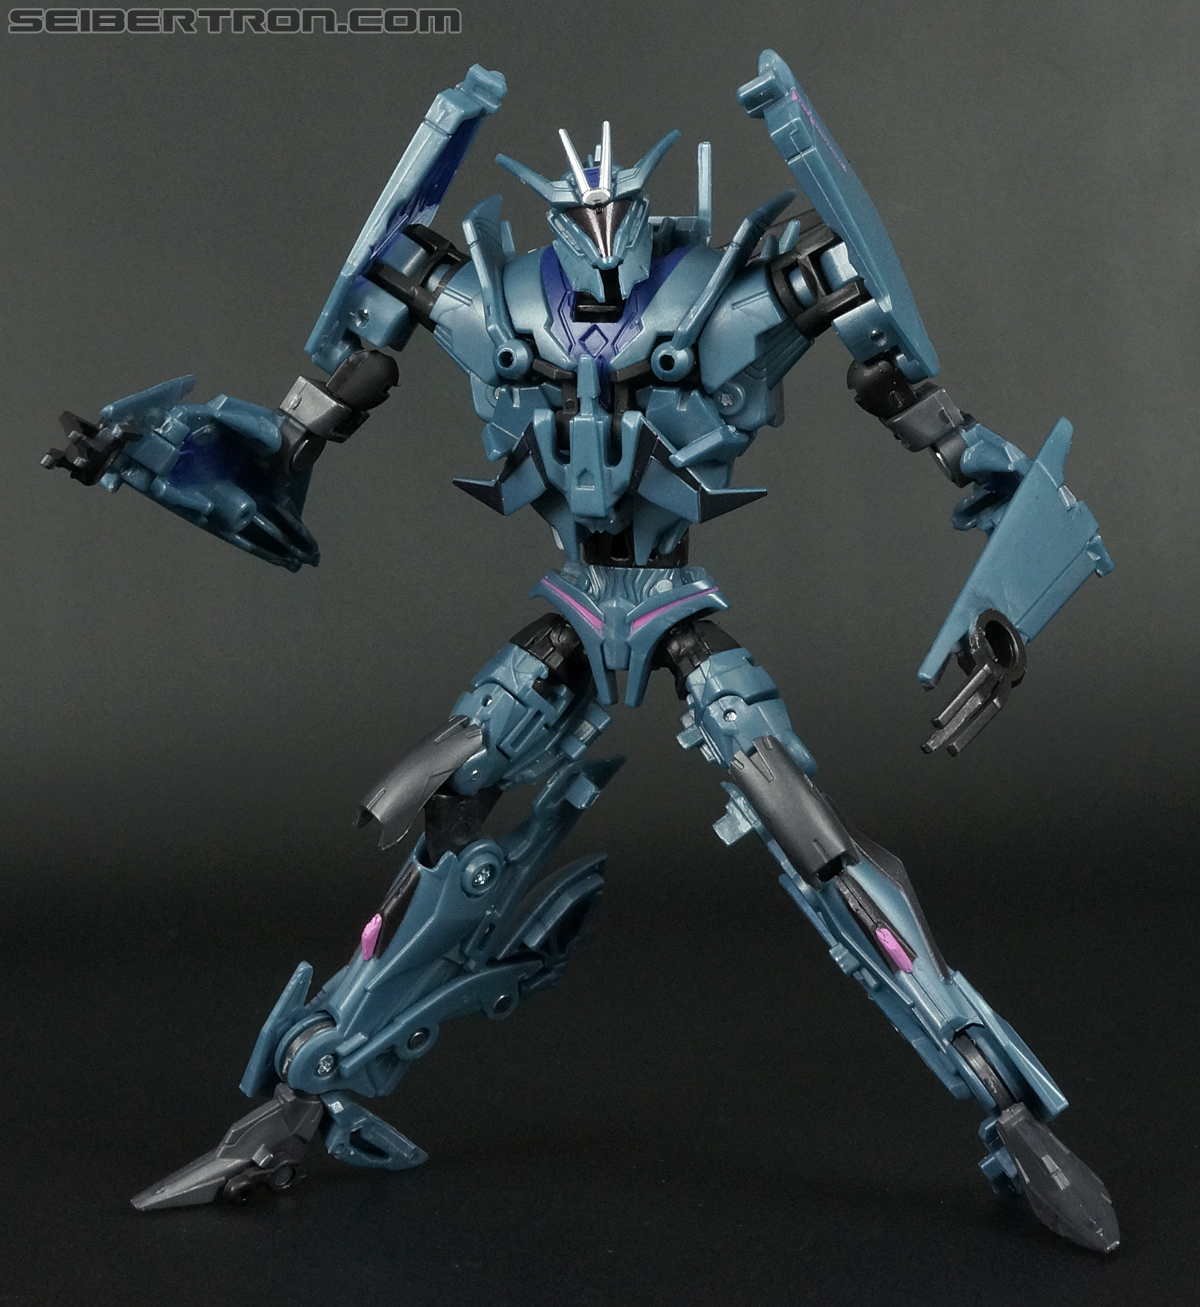 Transformers Prime: Robots In Disguise Soundwave Toy ...